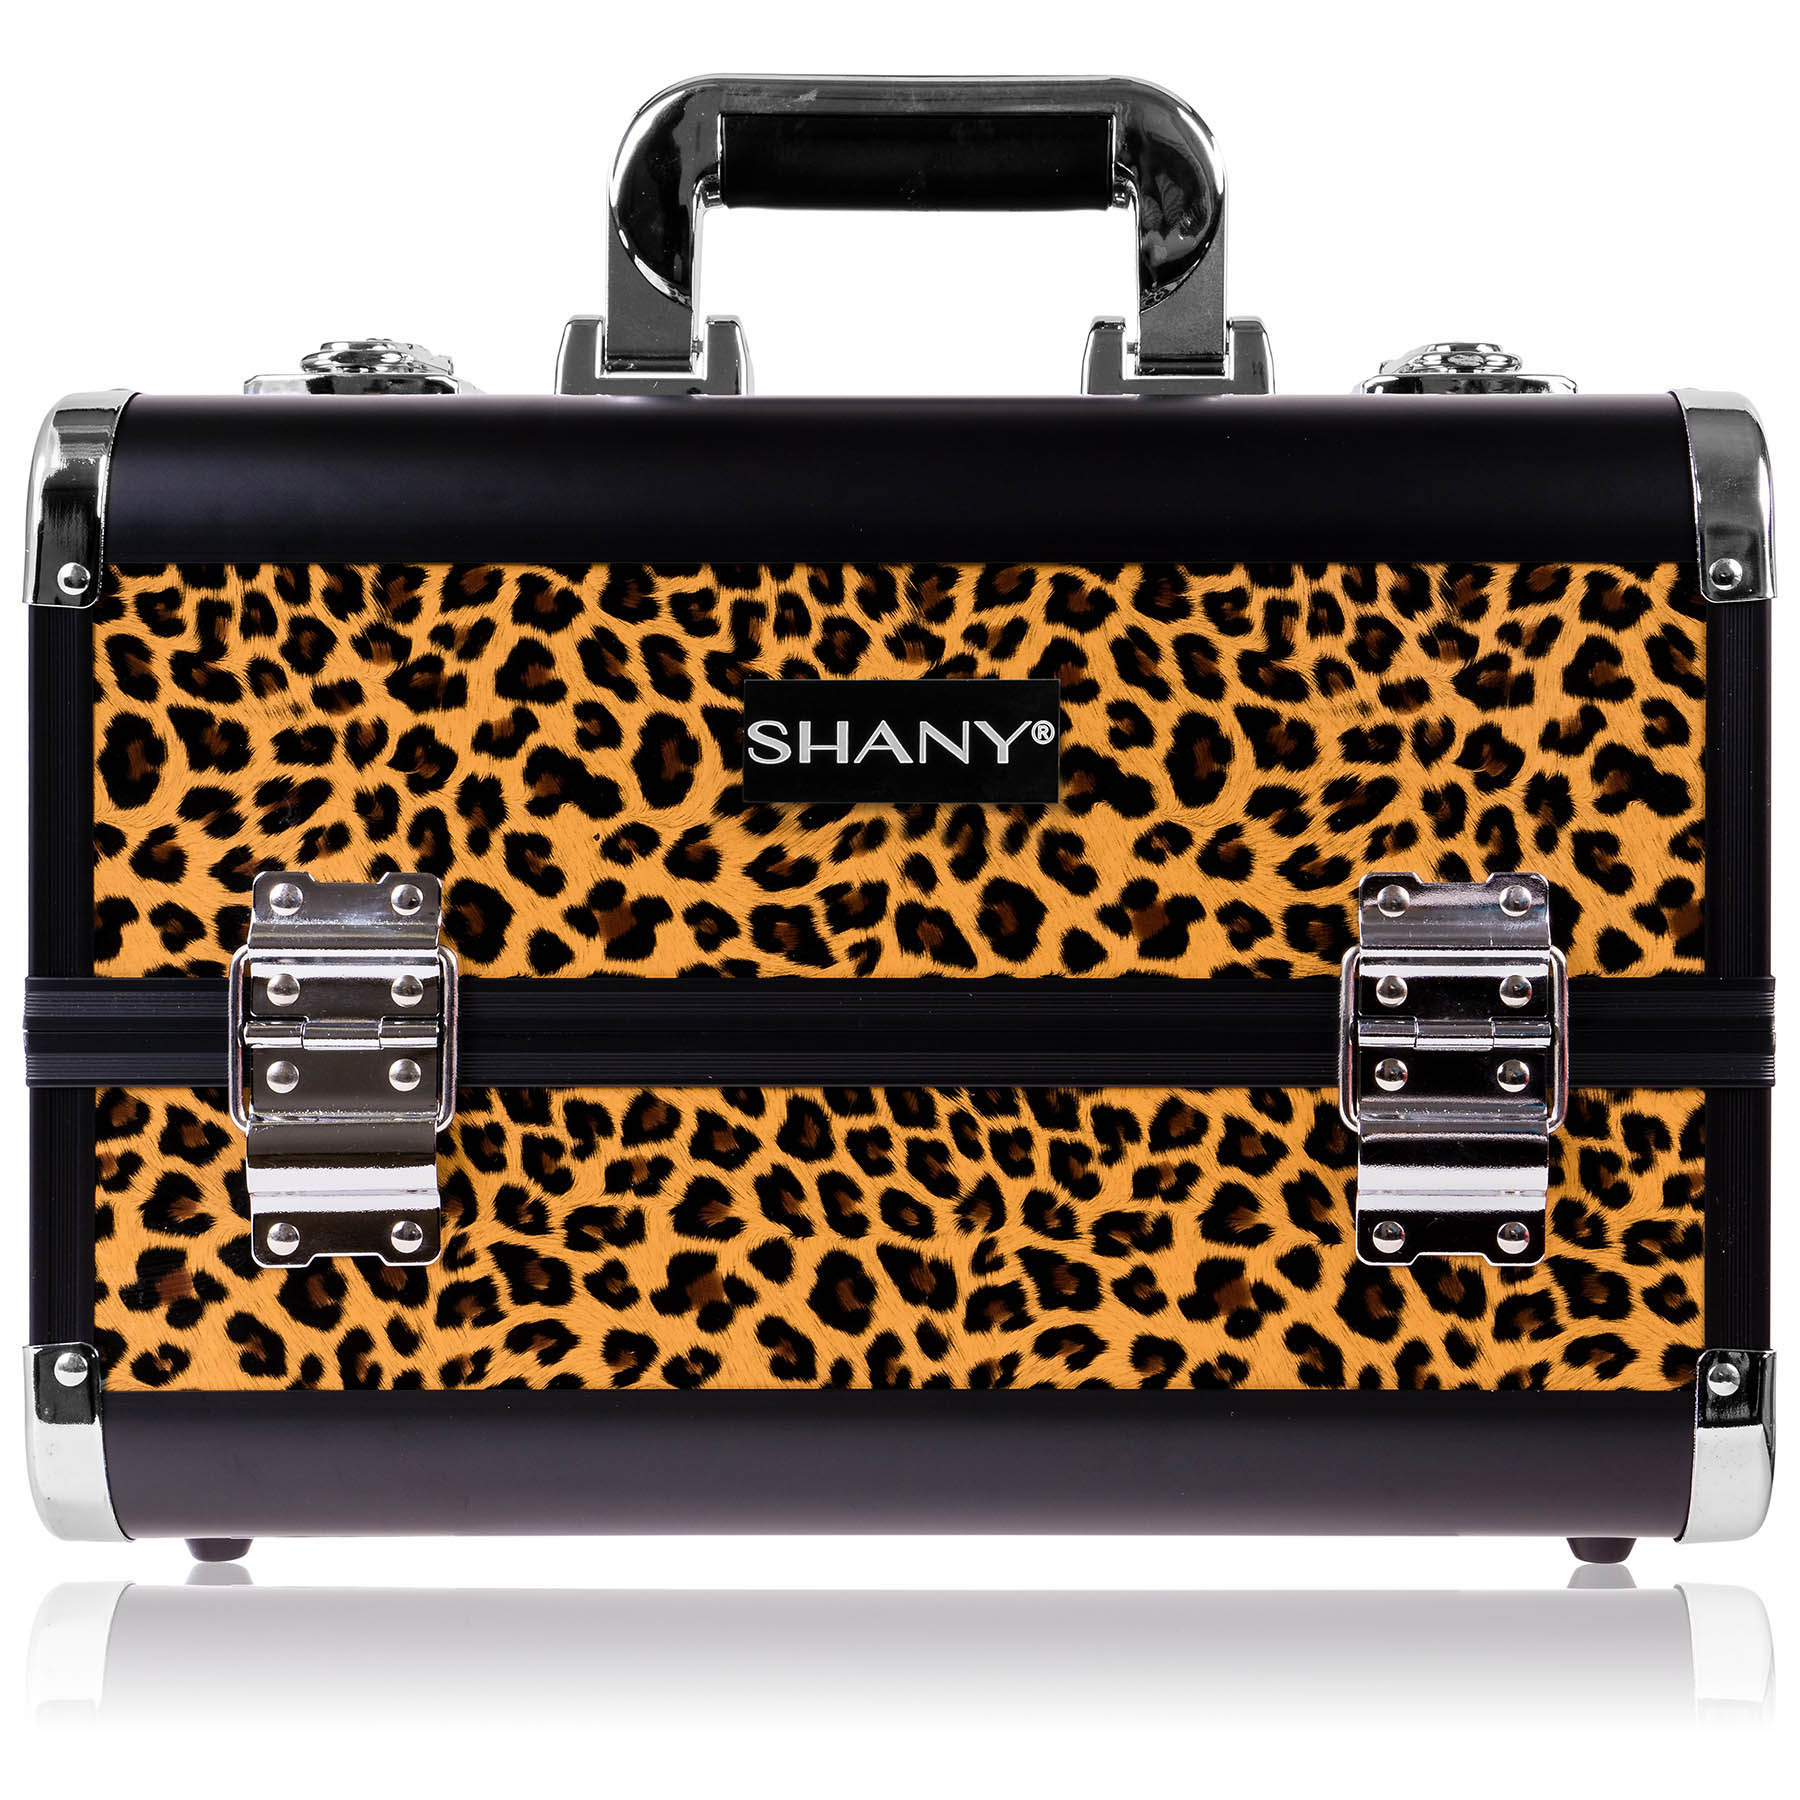 SHANY-Fantasy-Collection-Makeup-Artists-Cosmetics-Train-Case miniature 22